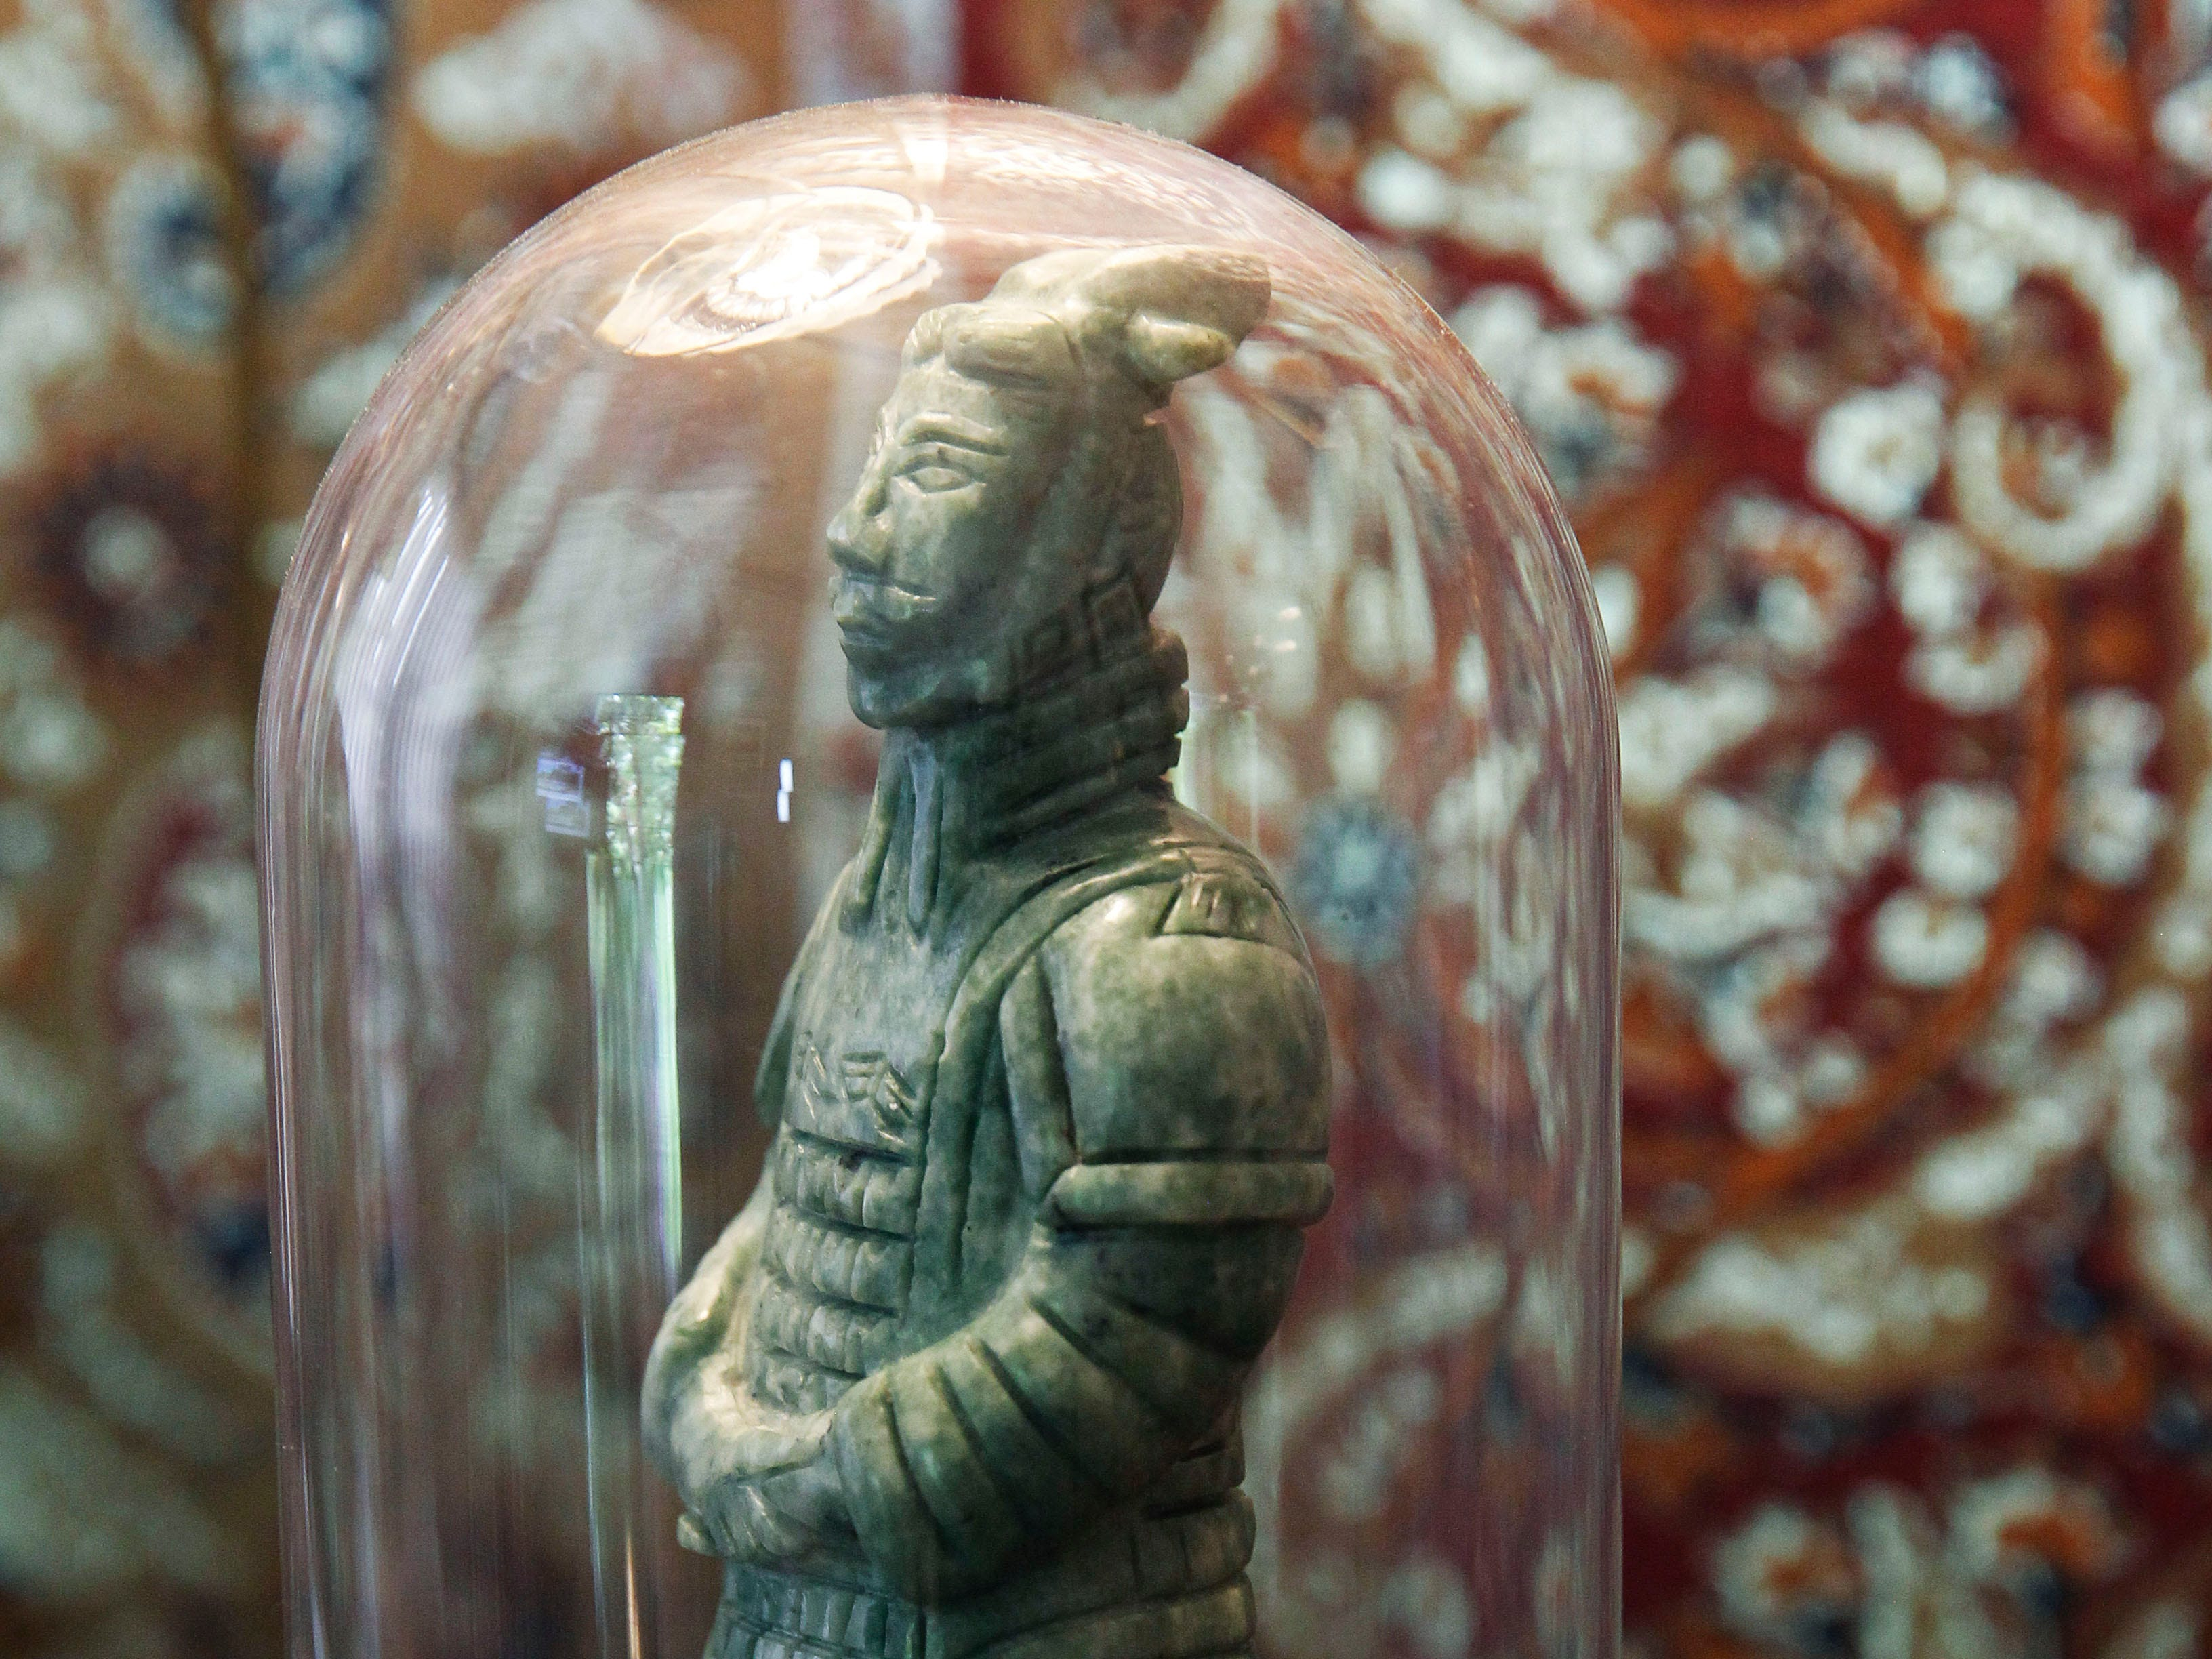 A jade statue of the terra cotta soldier is among the homeowner's  treasured pieces from a visit to China.